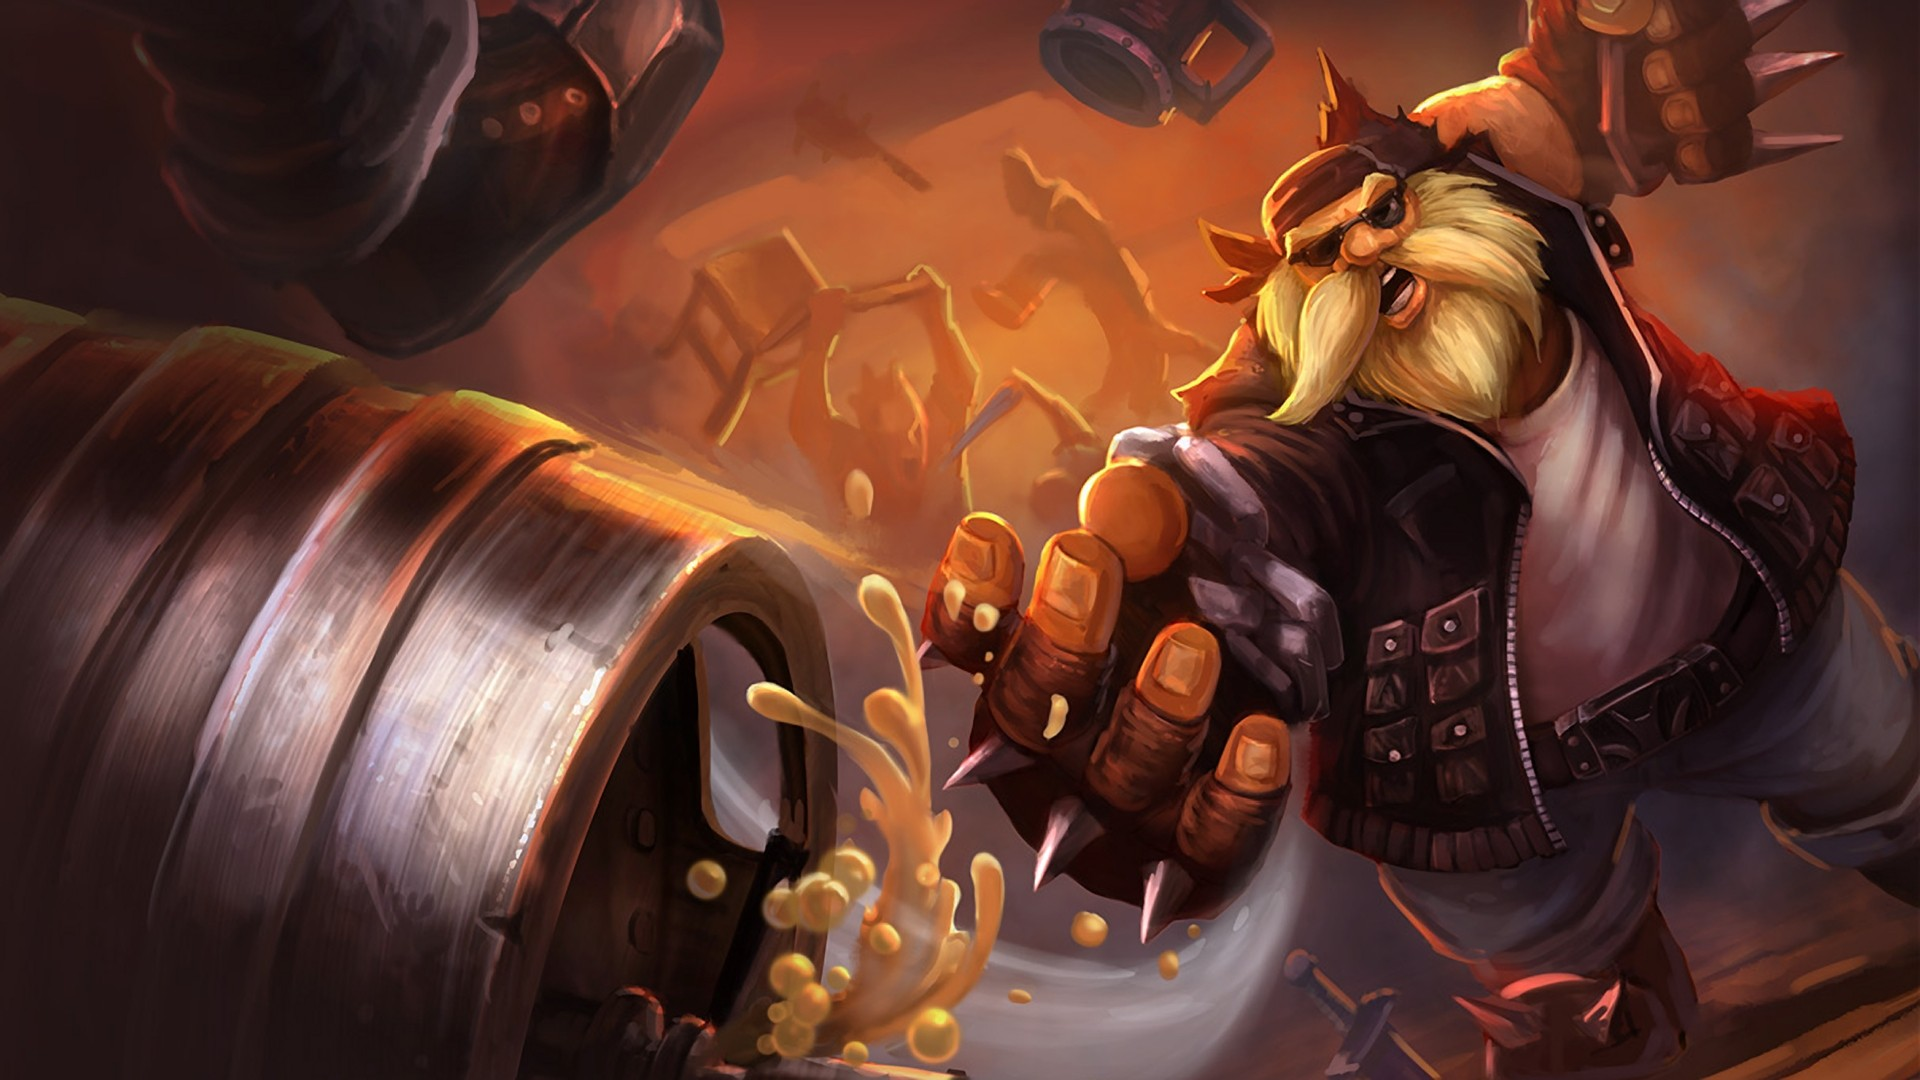 Download the Vandal Gragas Wallpaper Vandal Gragas iPhone 1920x1080